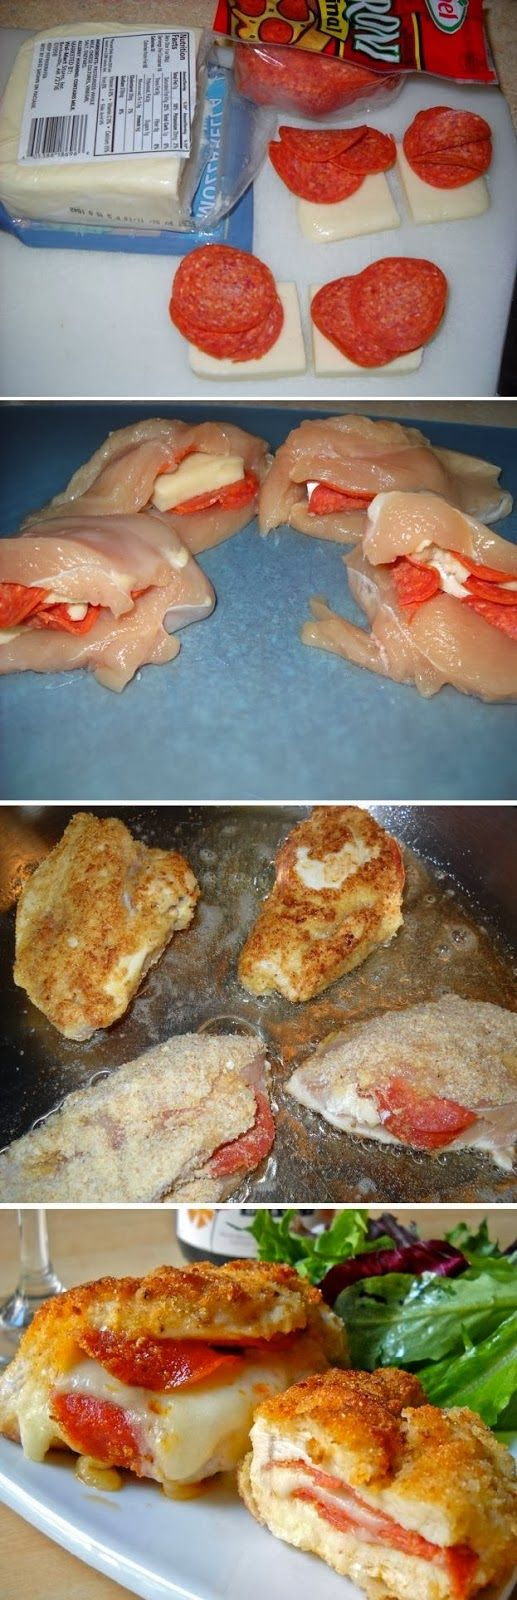 Gluten Free Pepperoni and cheese stuffed chicken breast. Use GF pepperoni, flour